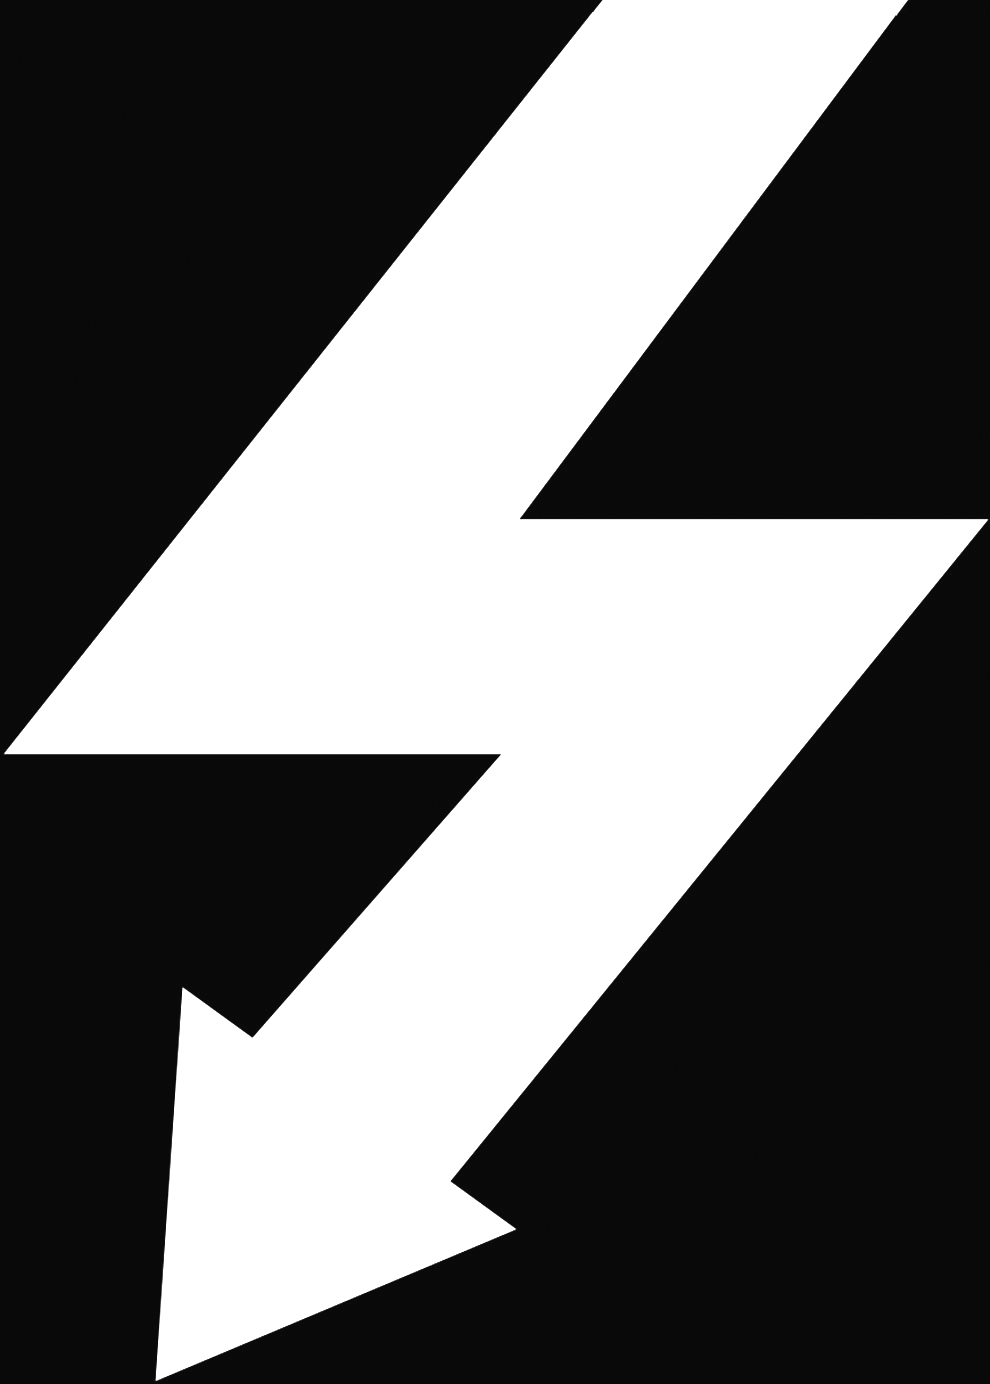 lighting bolt negative pictogram